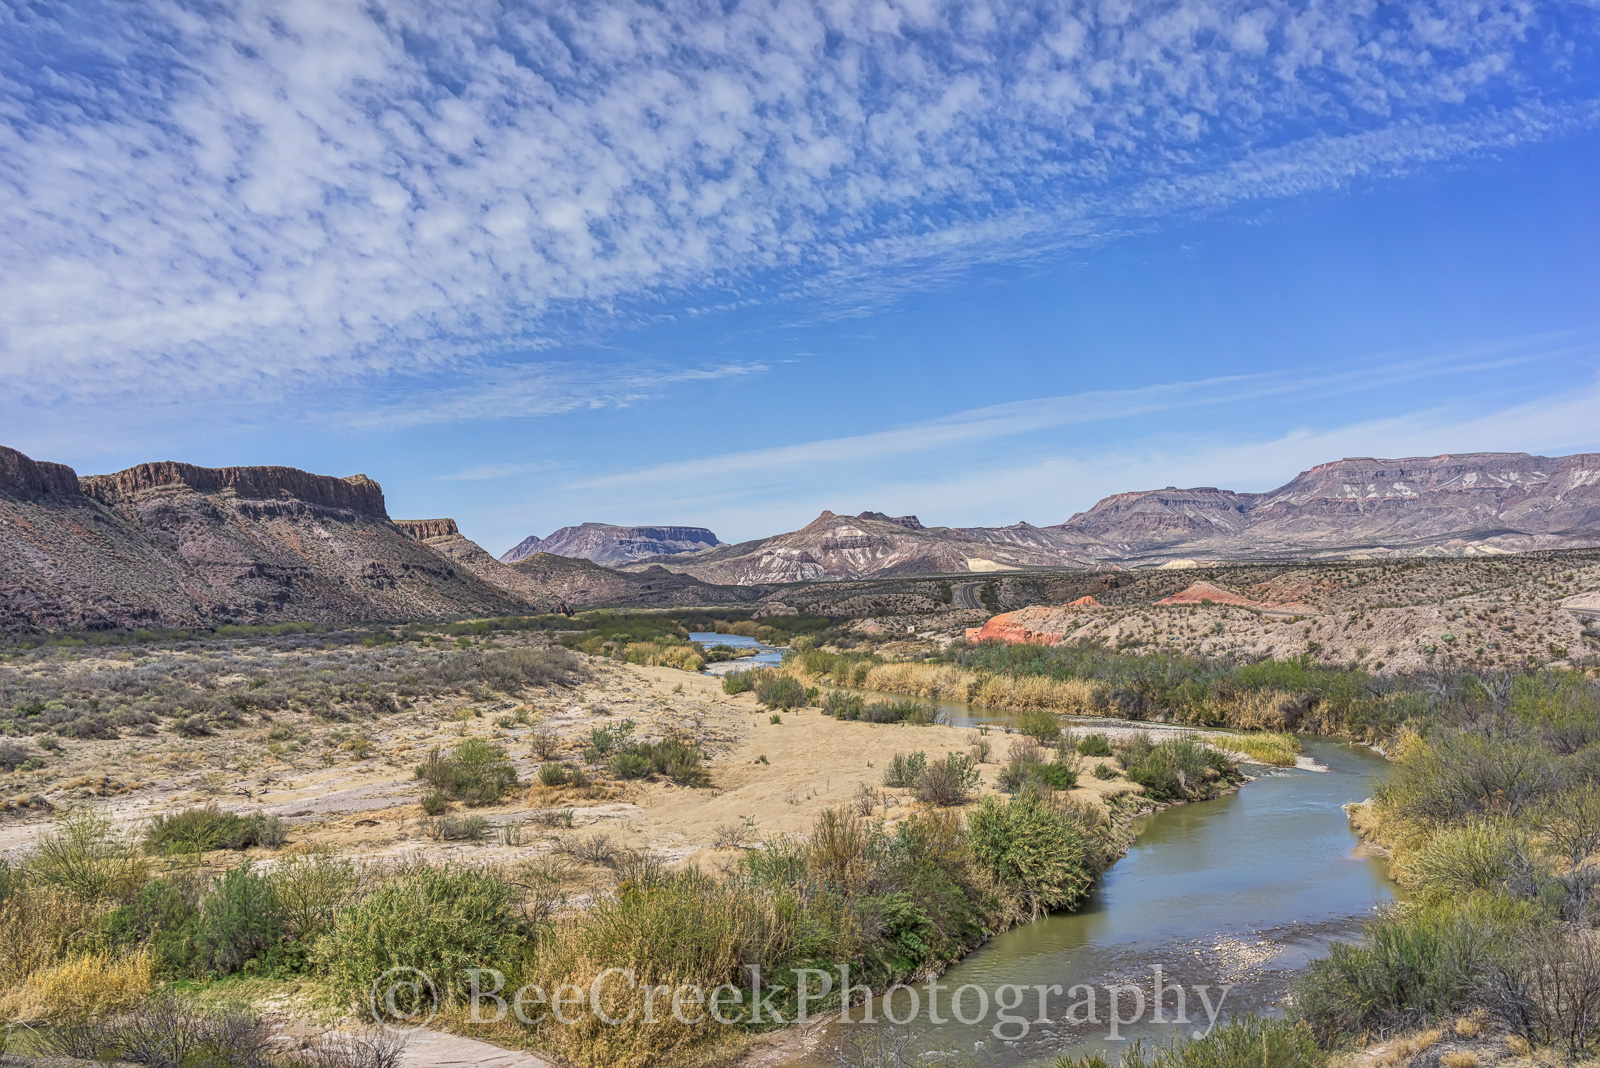 Big Bend State Park, Rio Grande river, aerial, landscape, mexico, mountians, river road, us, water, Mexico, photo